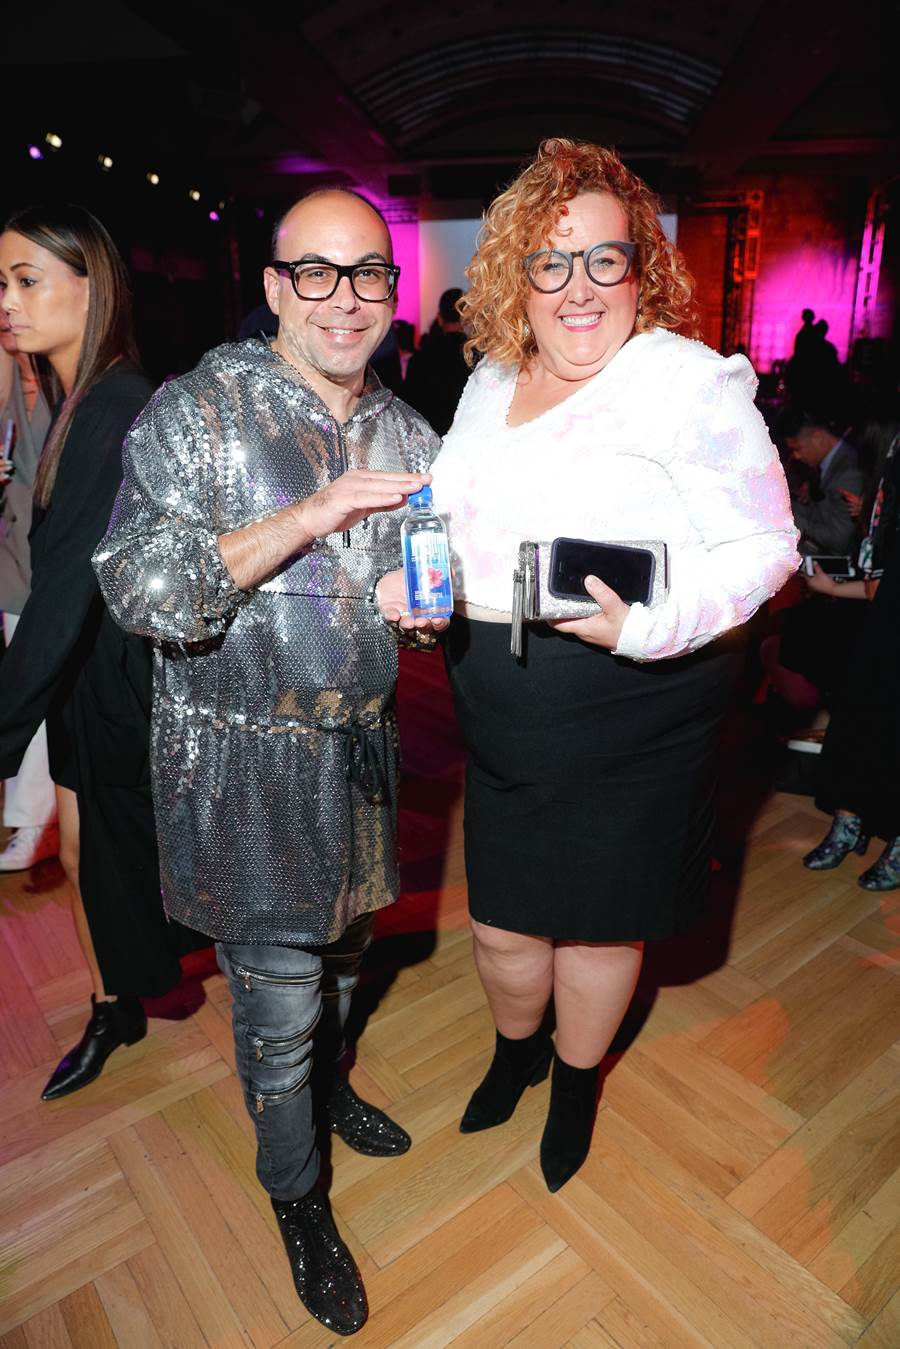 Matty Nyman and Sharron Matthews enjoying FIJI Water at Lesley Hampton's fashion show during day three of Toronto Fashion Week® - FIJI Water as the Official Water SponsorPhoto credit: Getty Images and Rock it Promotions